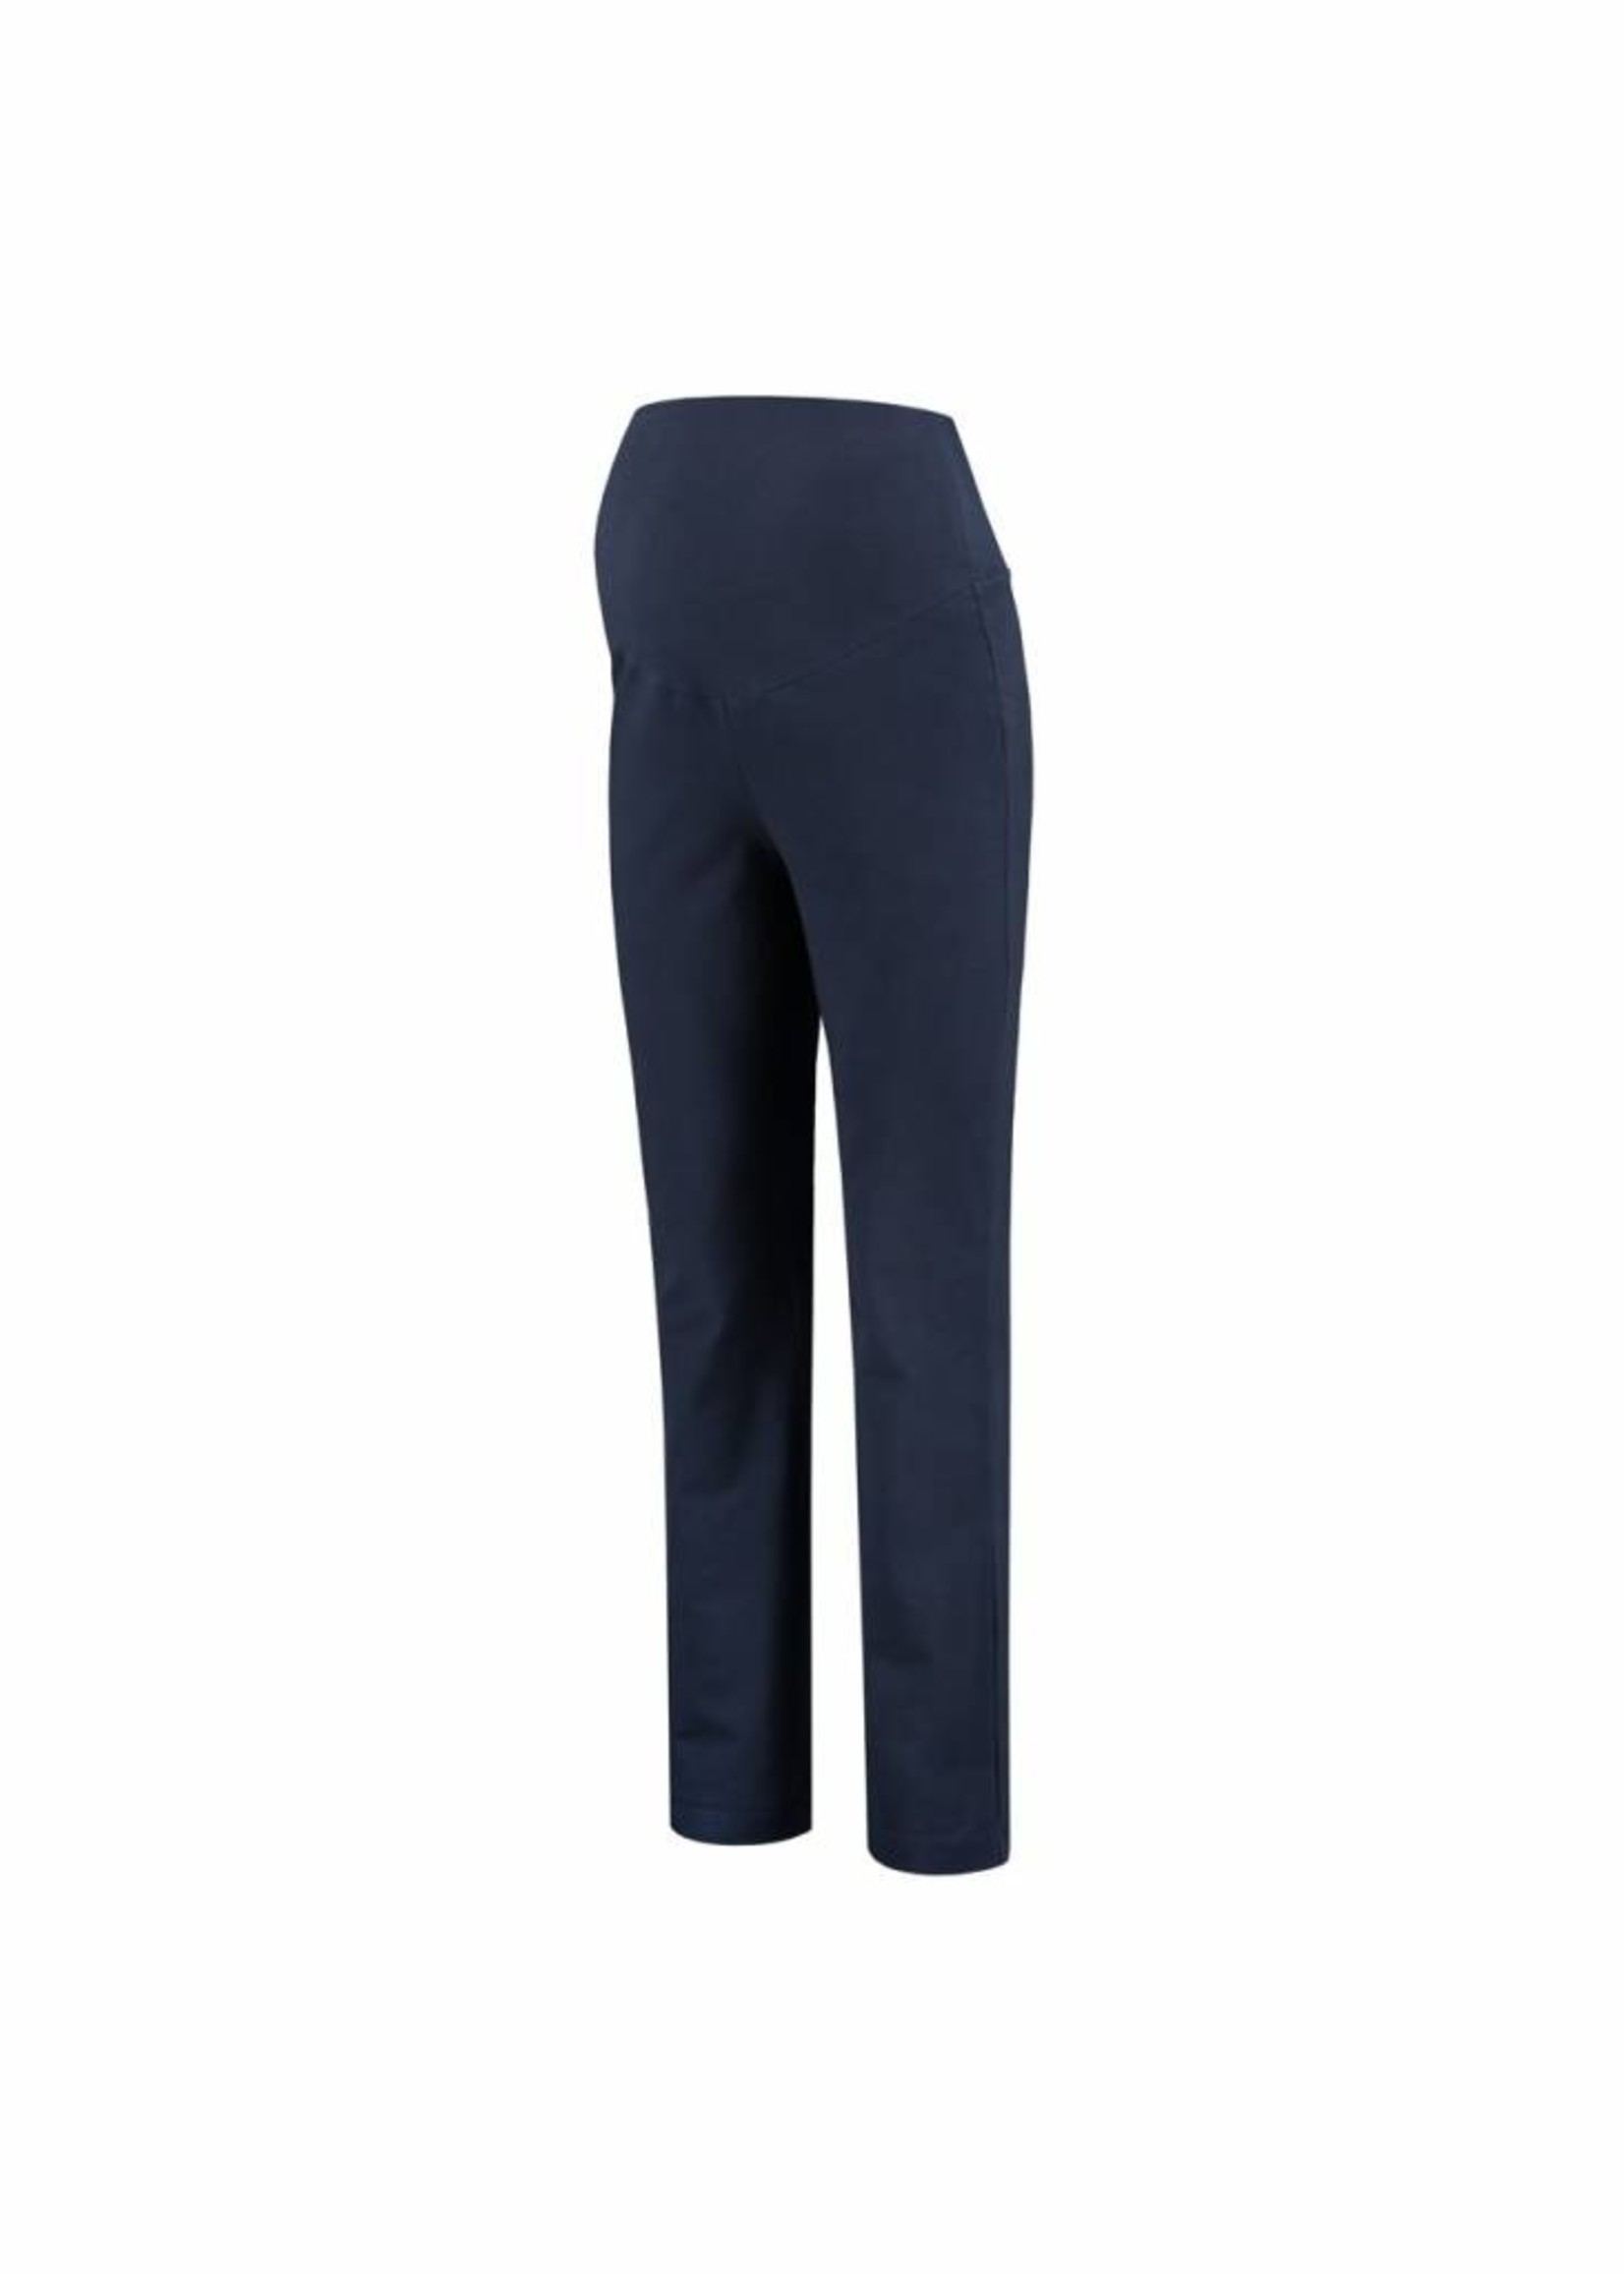 MAMSY Home Wear Pants DBL